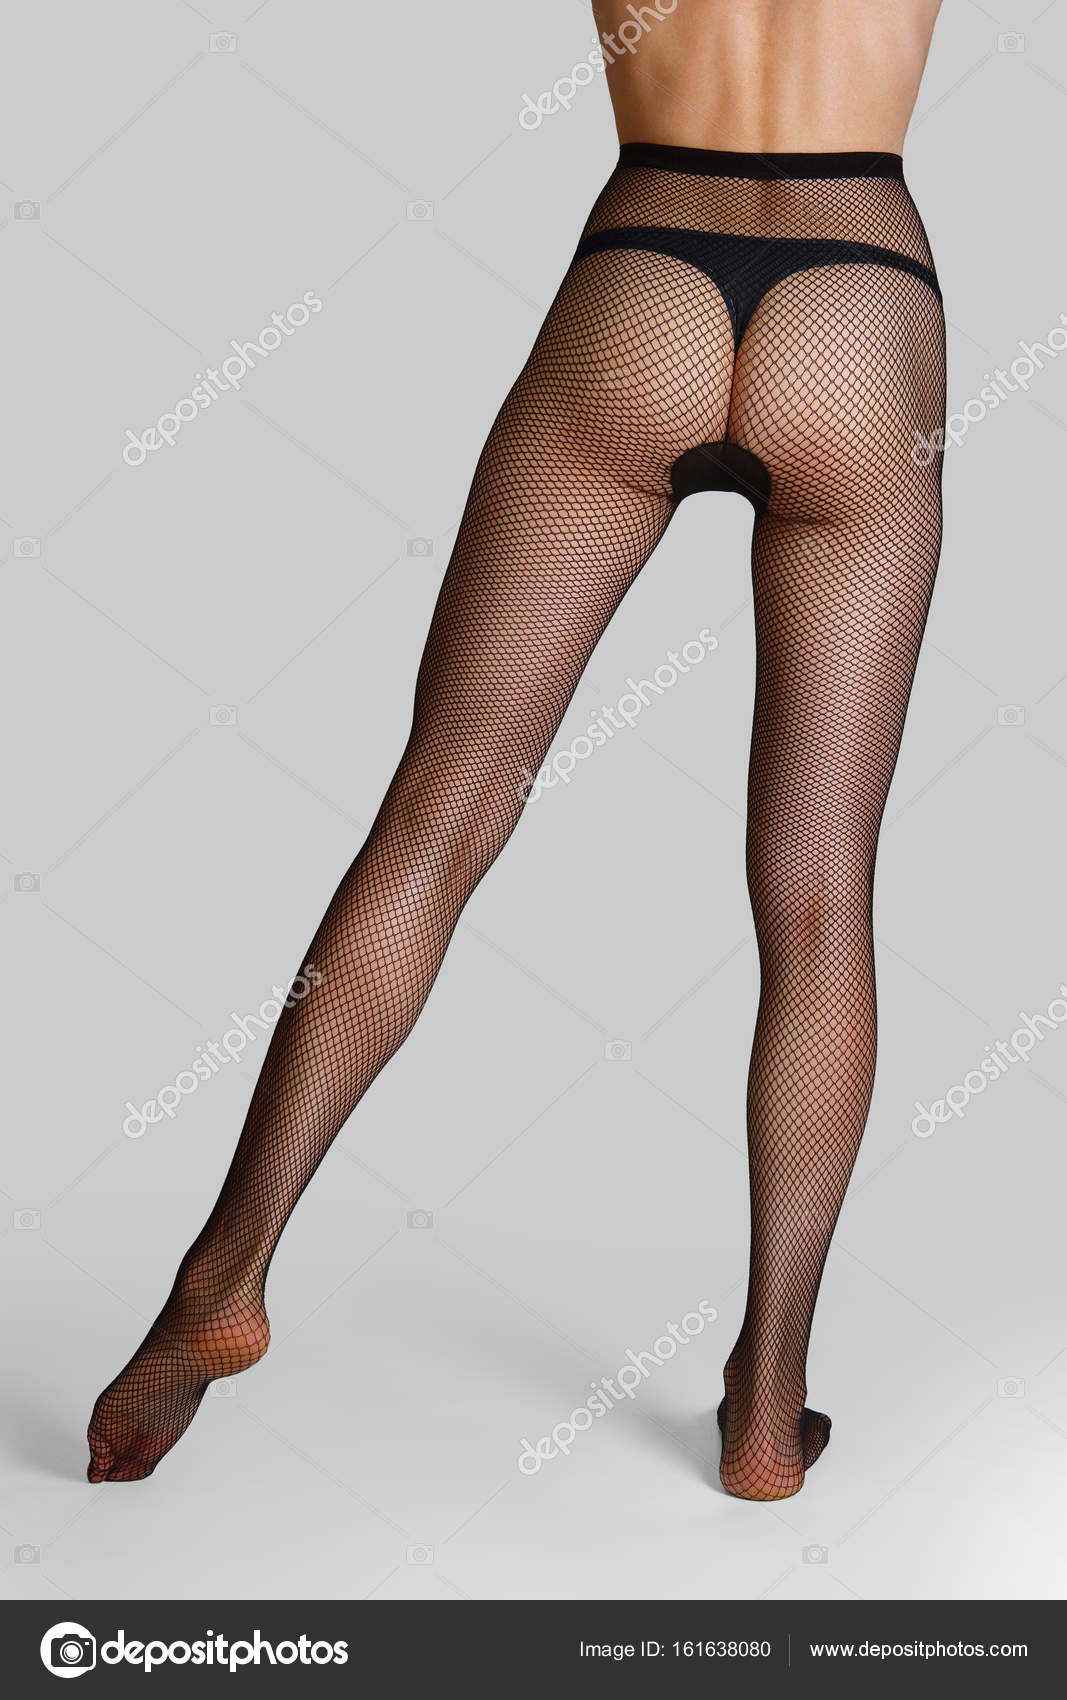 Long Slim Female Legs In Elegant And Sexy Black Fishnet Tights Back View With One